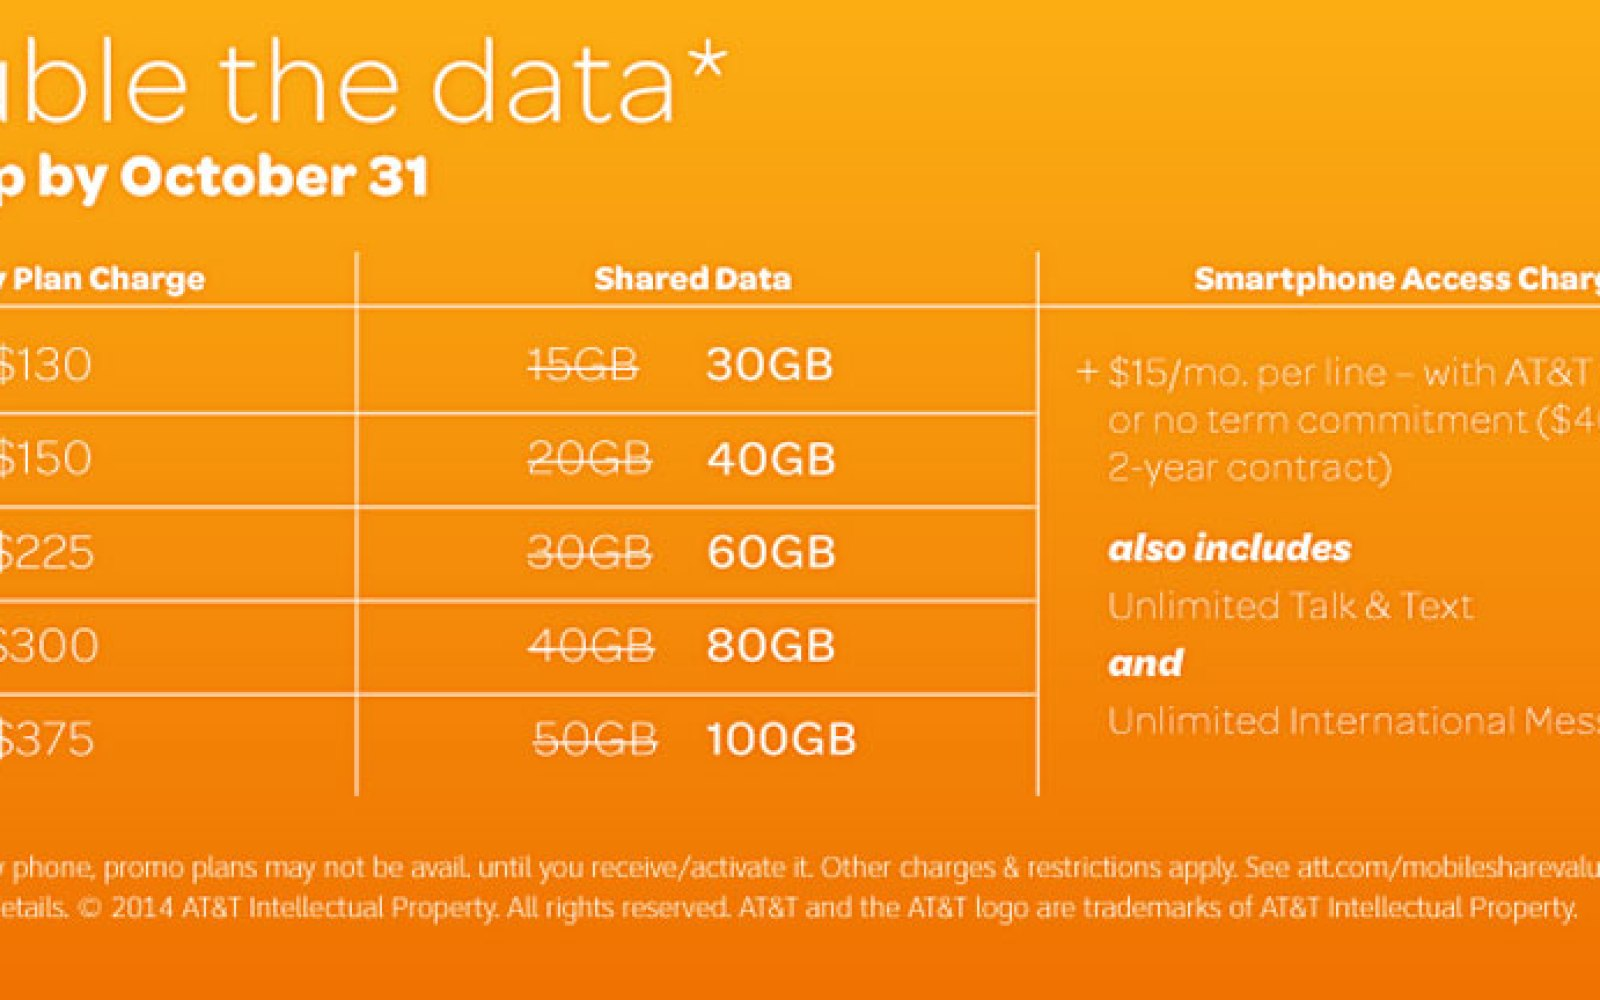 AT&T now offering double data on 15 GB and higher Mobile Share Value plans through October 31st